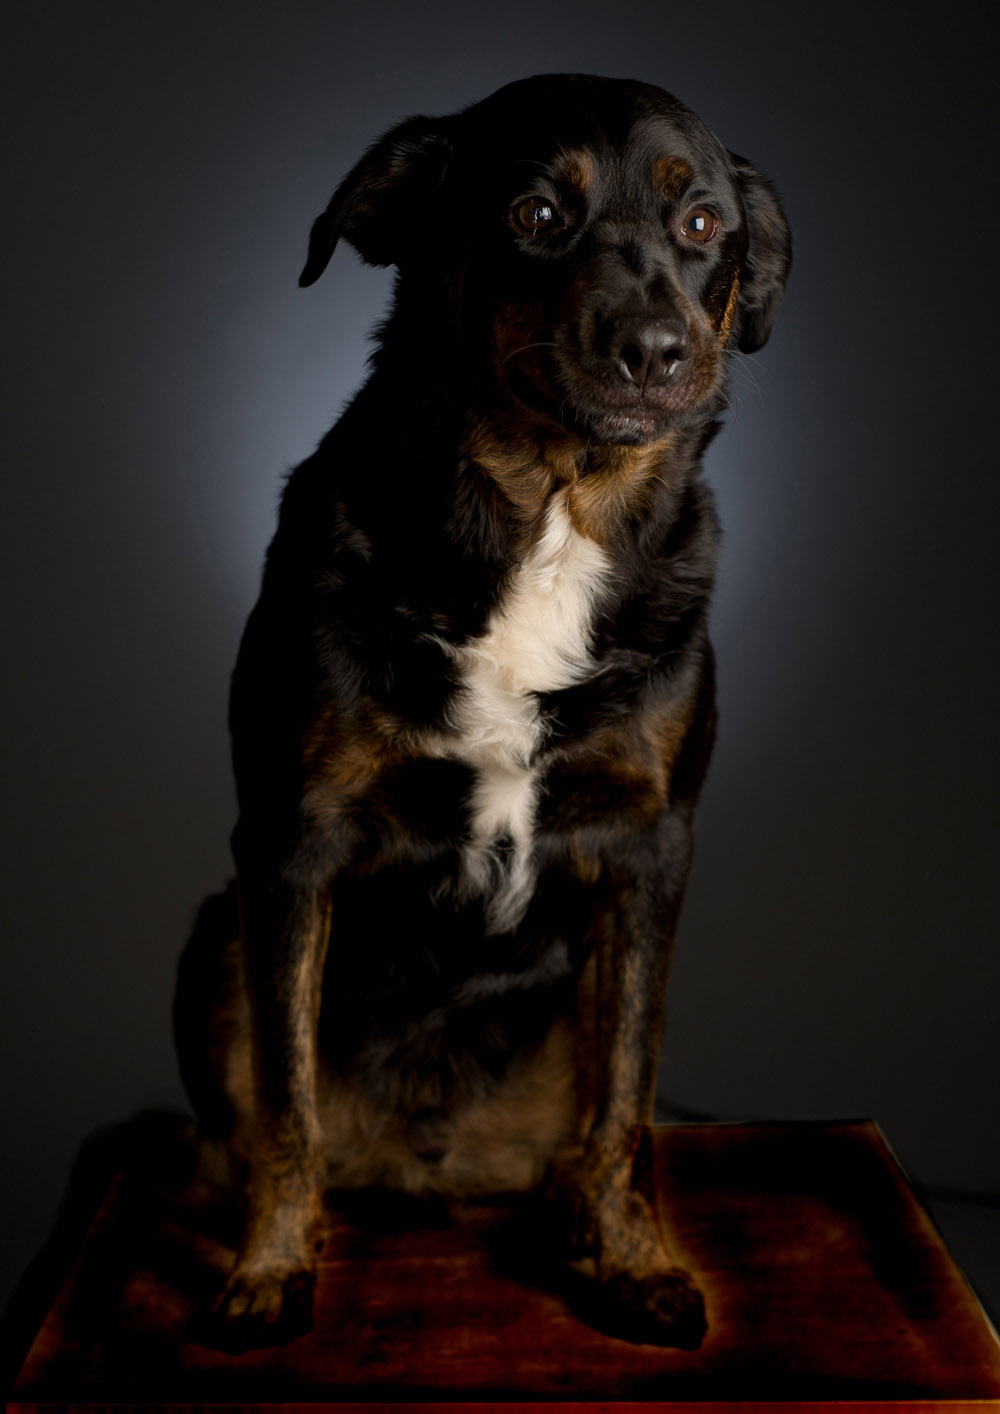 pet_portrait_photography_007